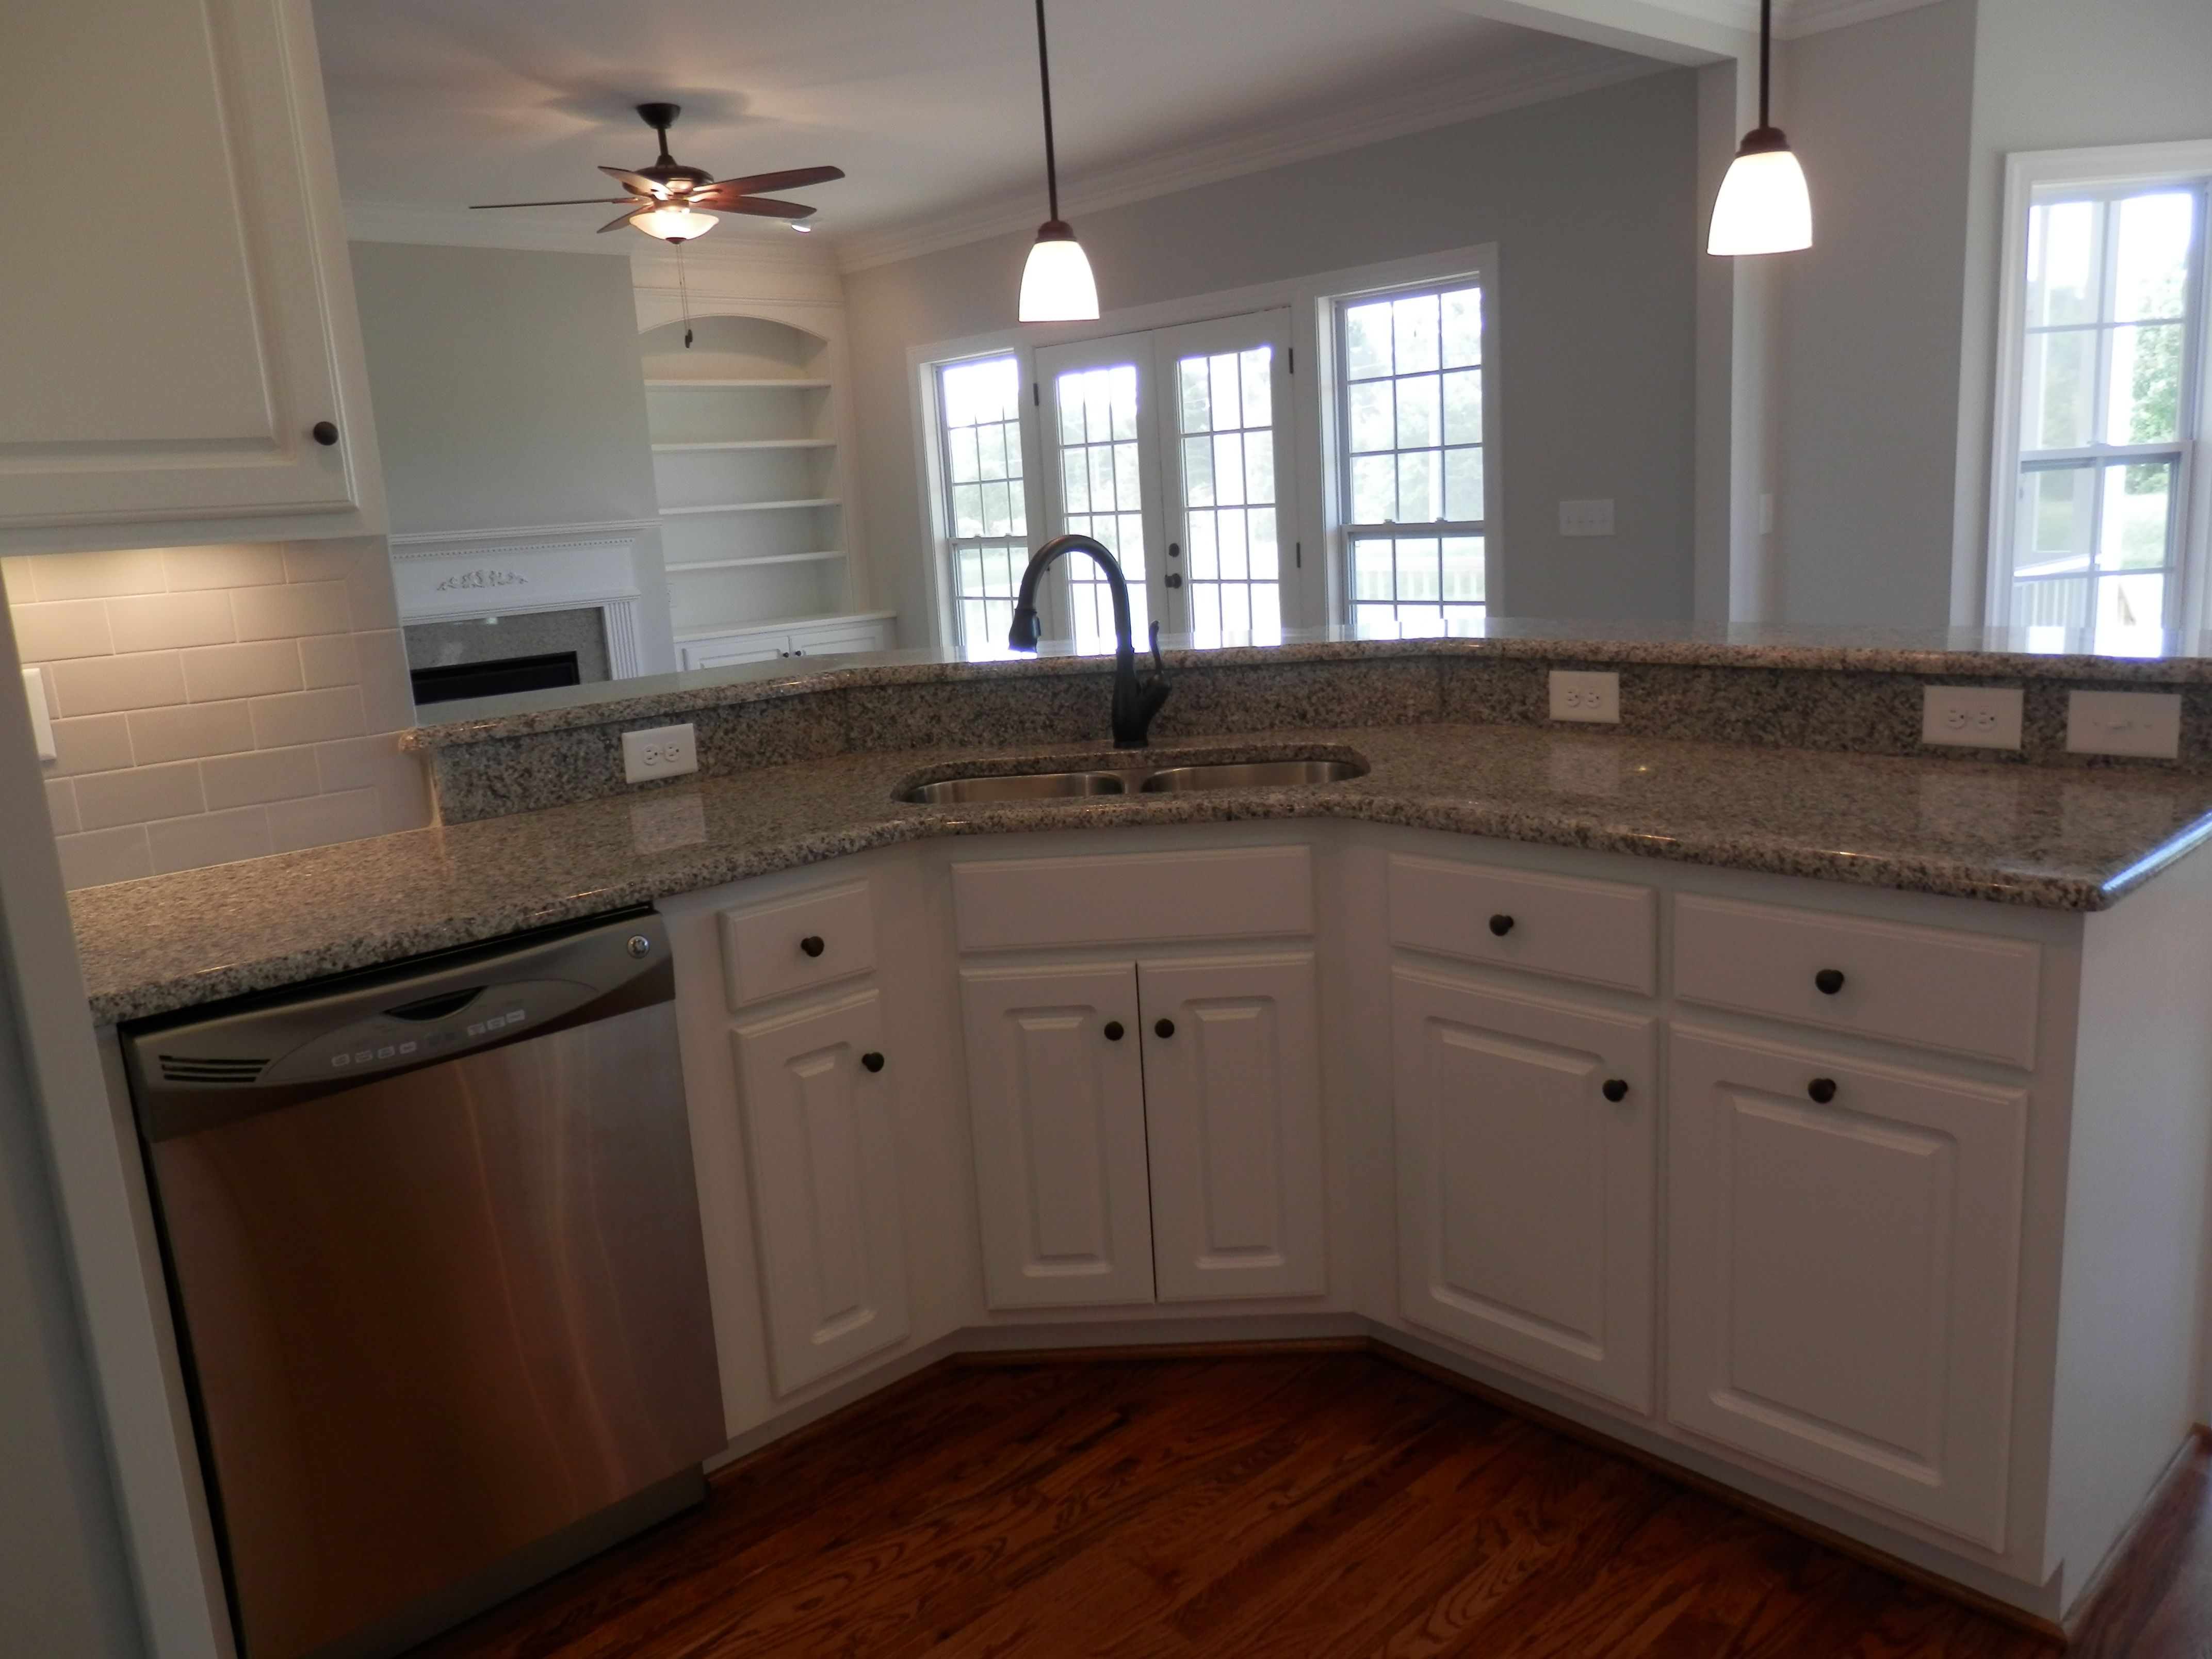 Kitchen featured in The Annabella By Four Seasons Contractors in Rocky Mount, NC